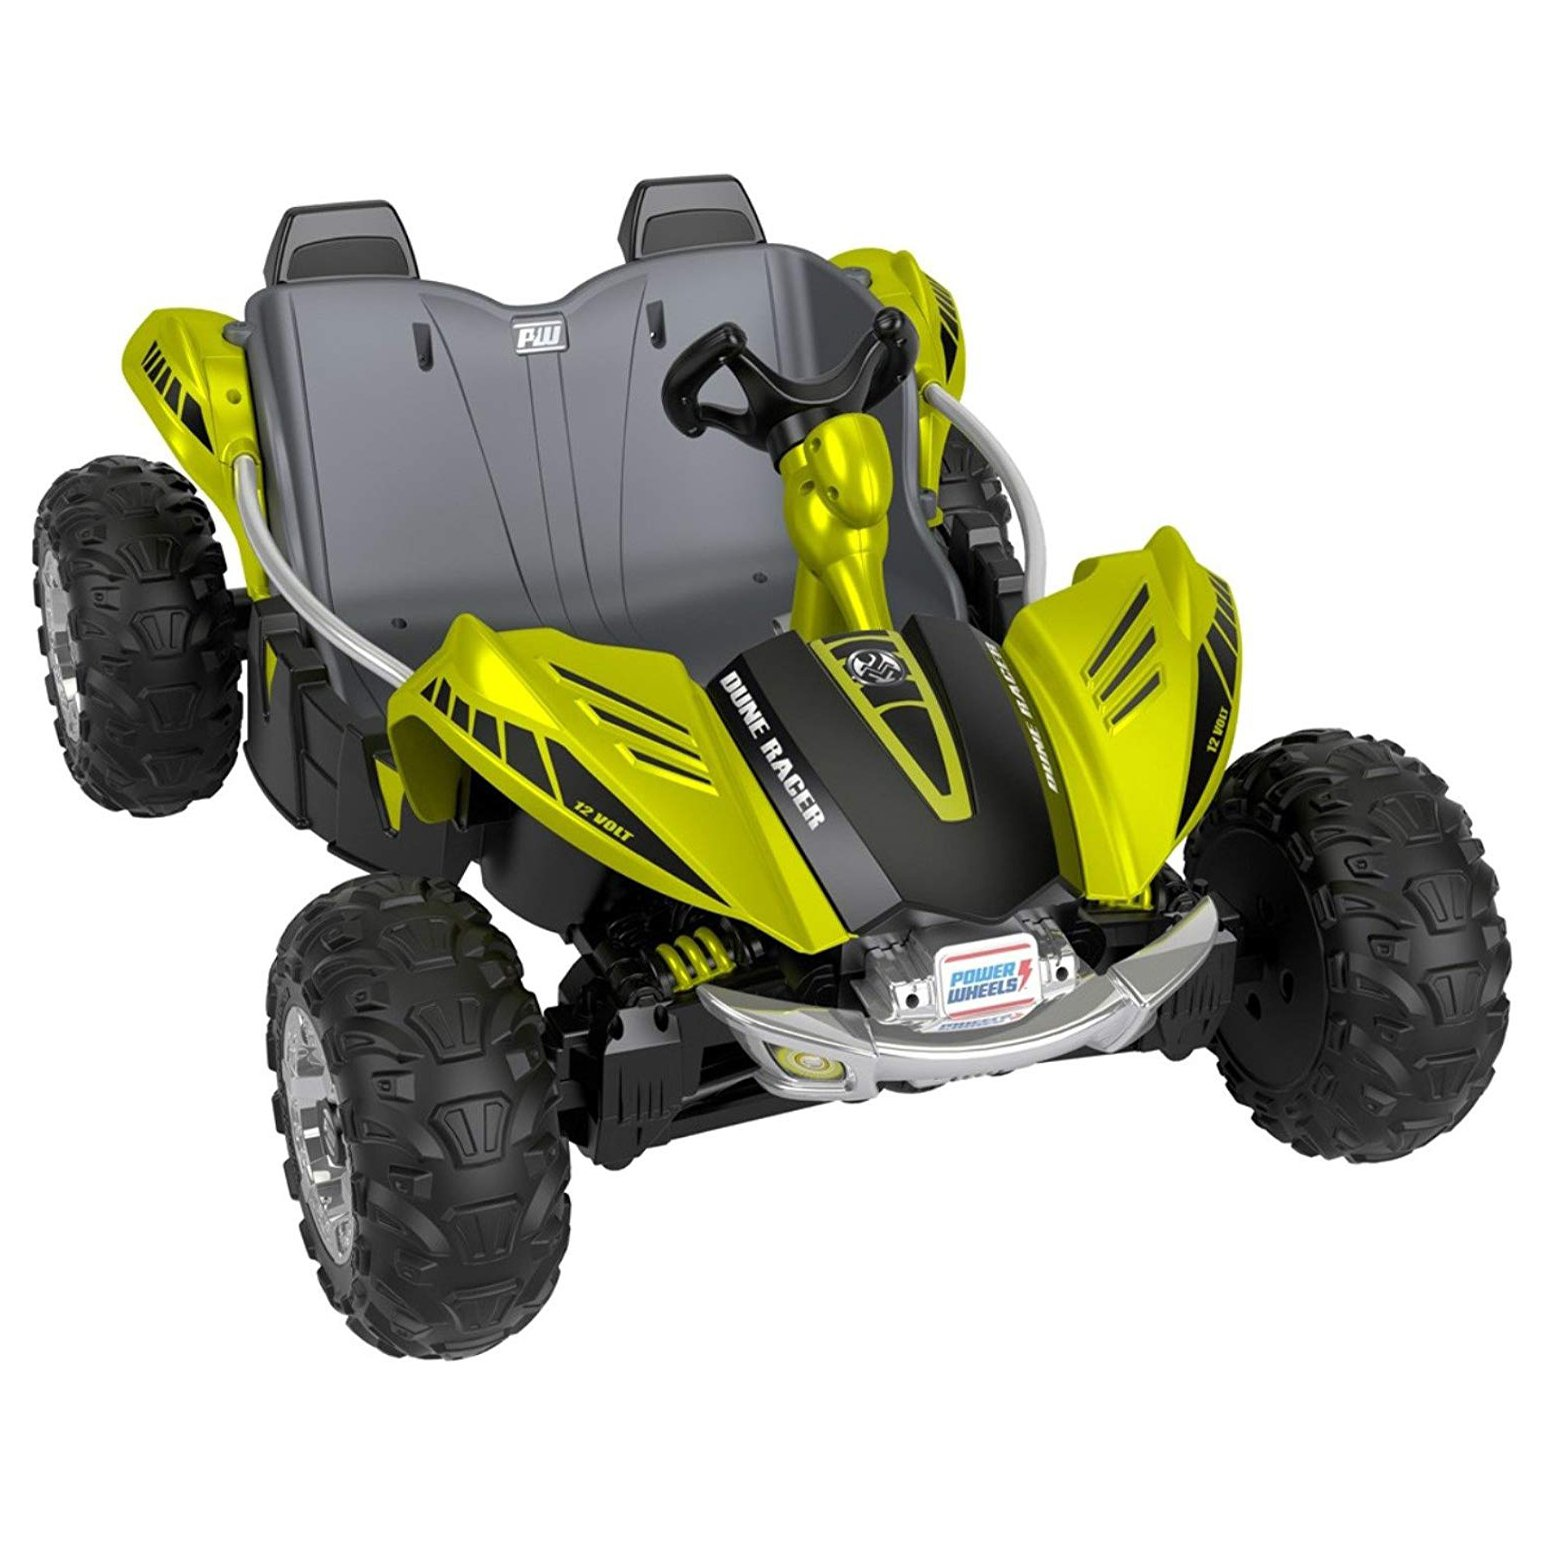 Fisher Price Power Wheels Kids Electric Car Ride On Mini ATV Dune Buggy Racer by Power Wheels